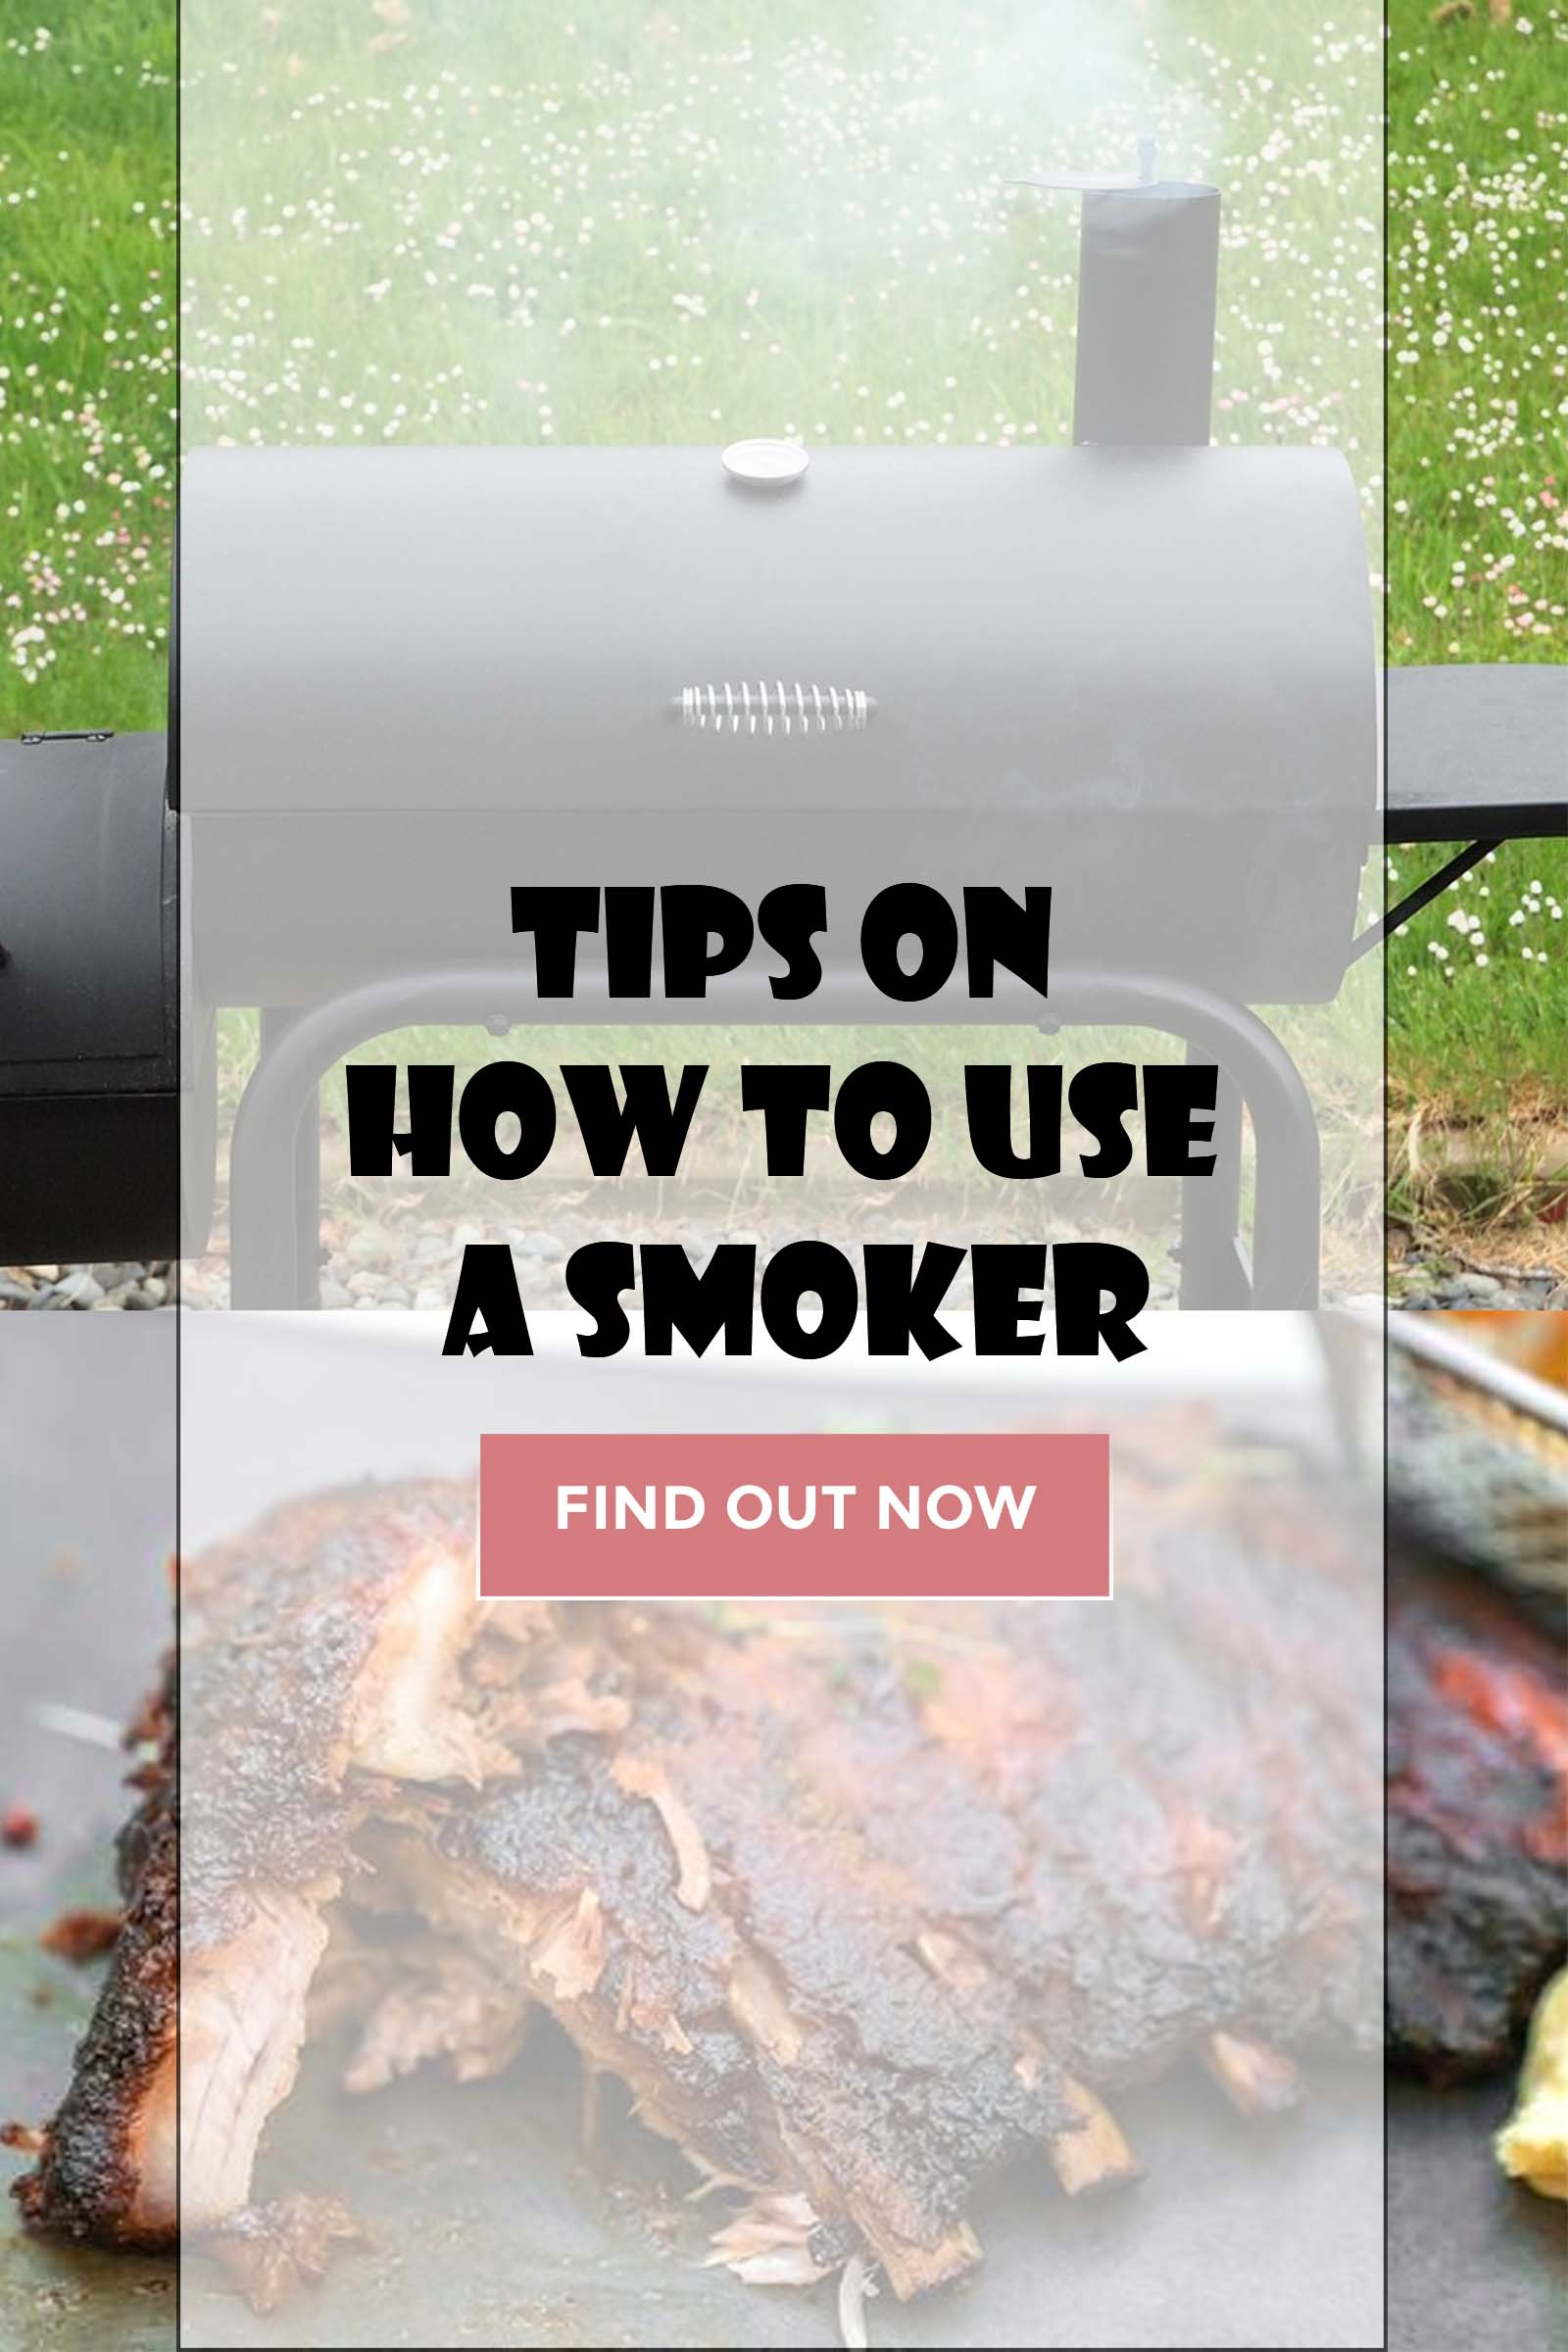 Tips On How To Use A Smoker